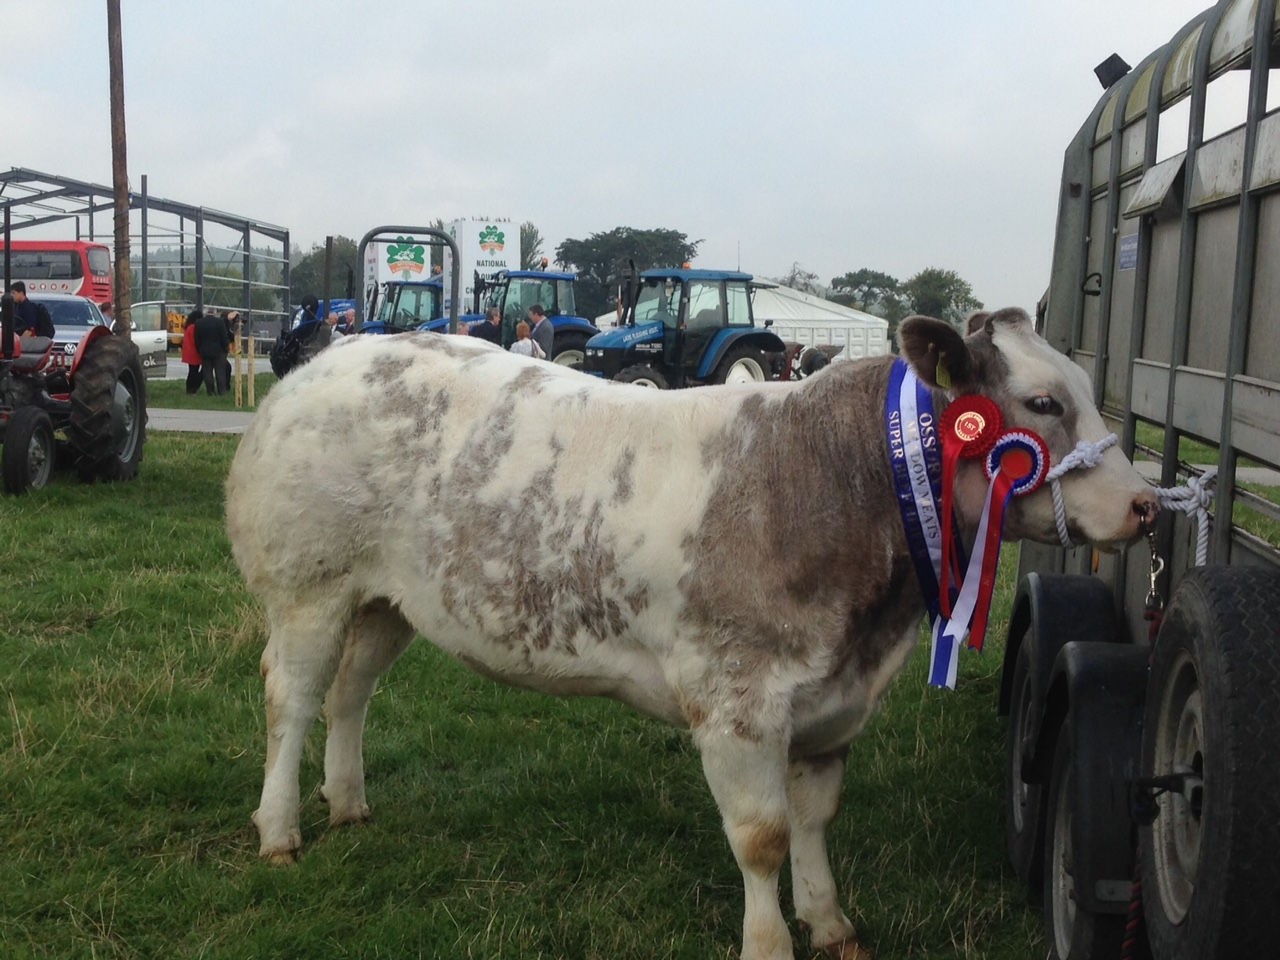 Belgium Blue X heifer who won Best Heifer with no Permanent Teeth at the Tullamore Show, owned by Erwin Stanley